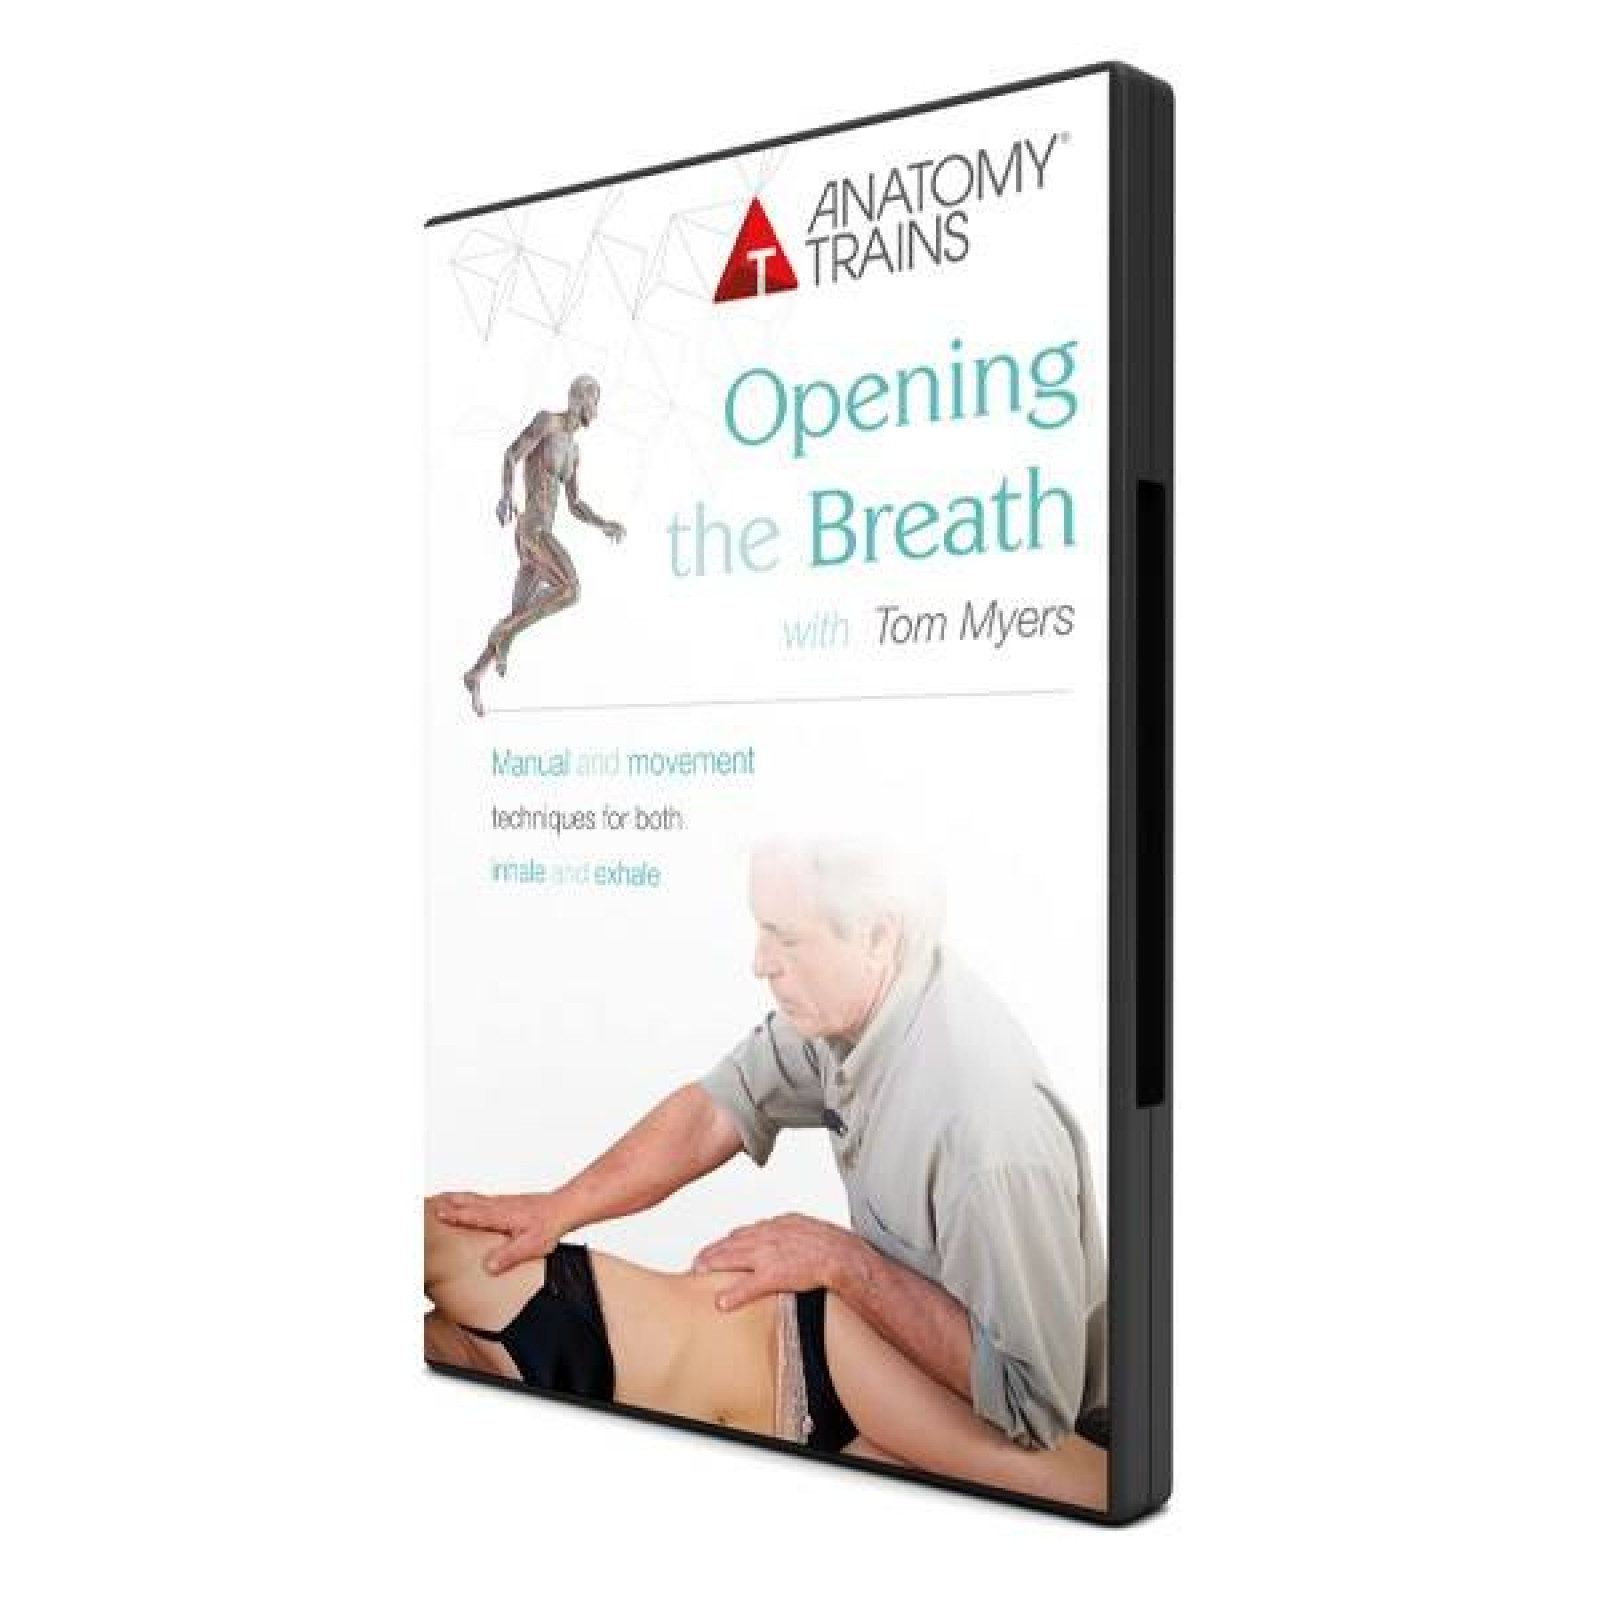 Opening the Breath (DVD)